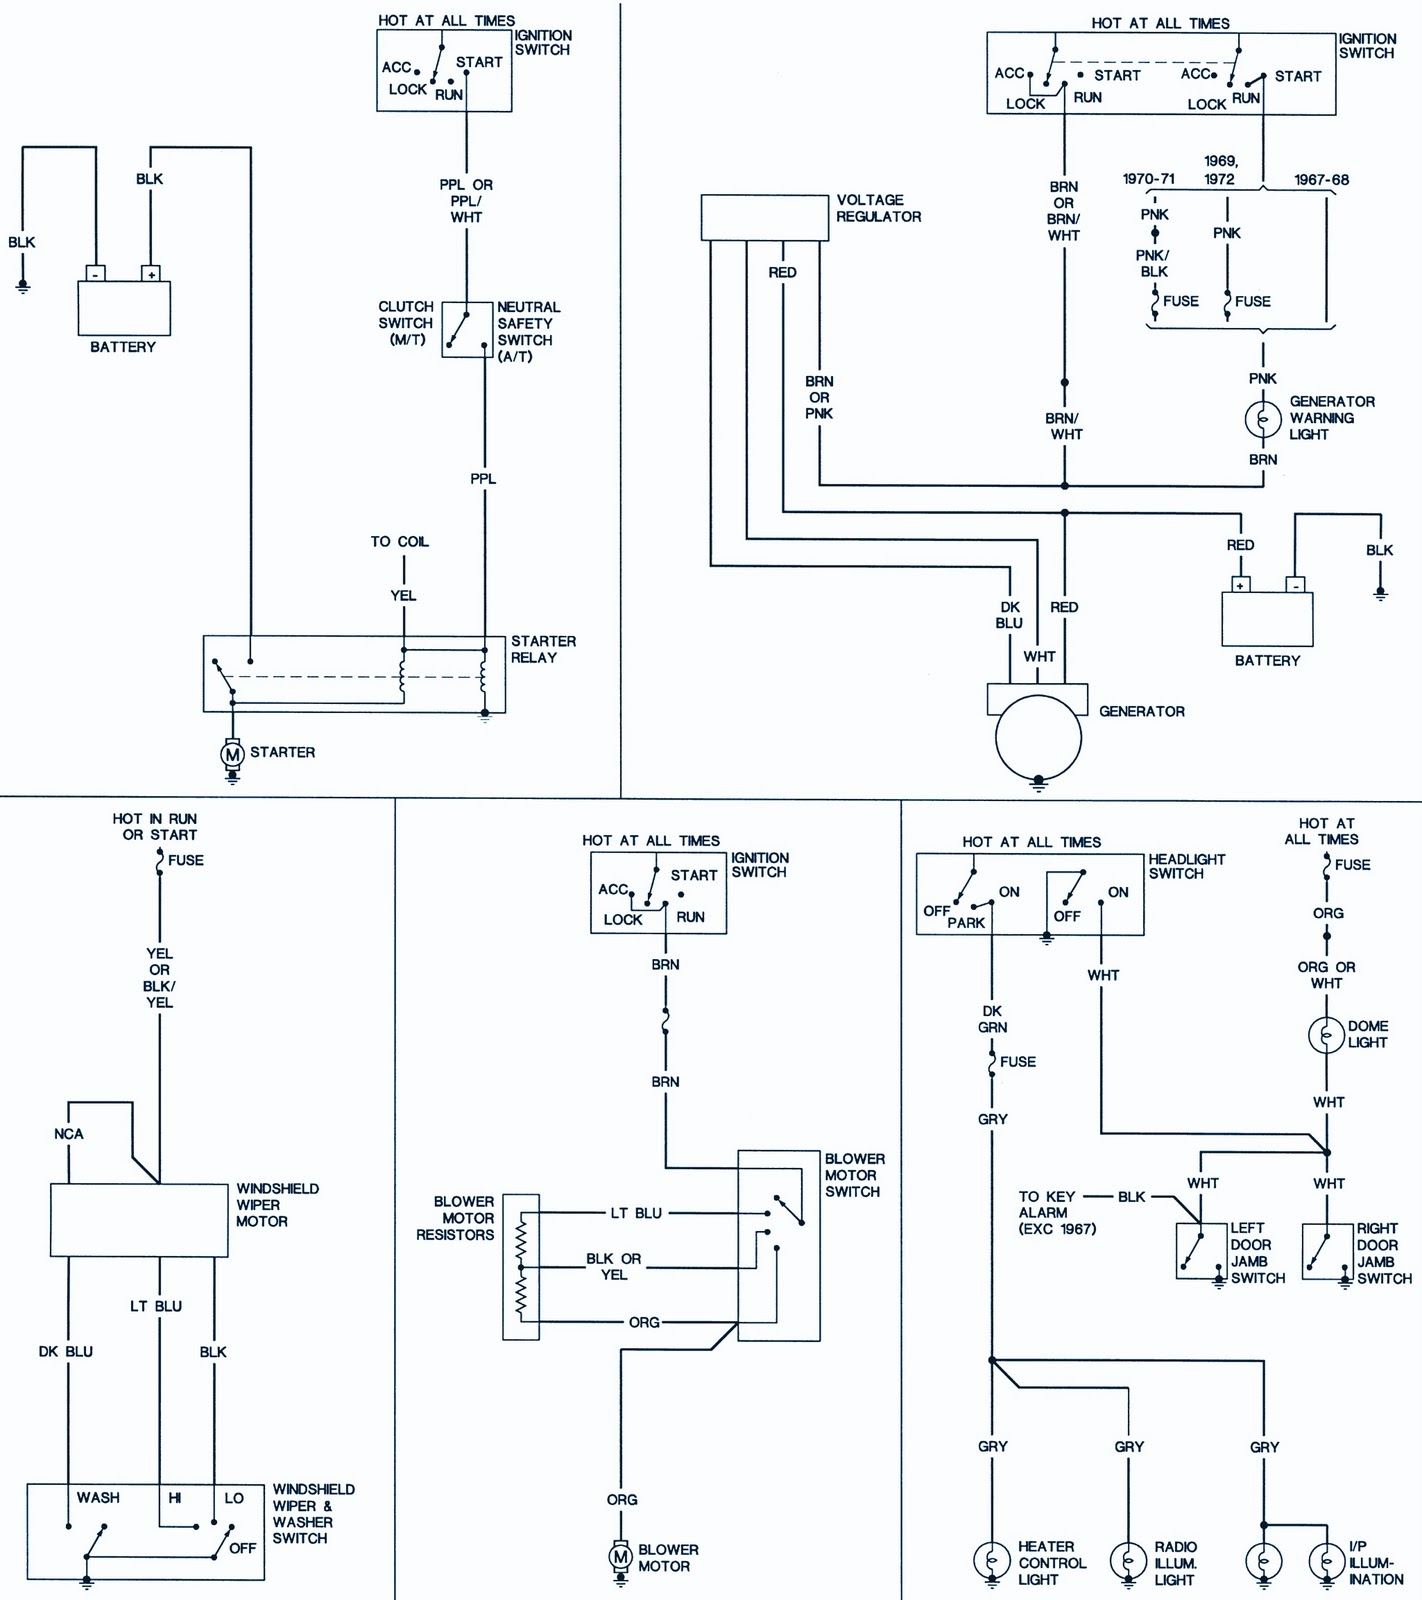 Great 72 c10 wiring diagram pictures inspiration the best sophisticated 1970 chevrolet impala wiring diagram gallery best cheapraybanclubmaster Gallery